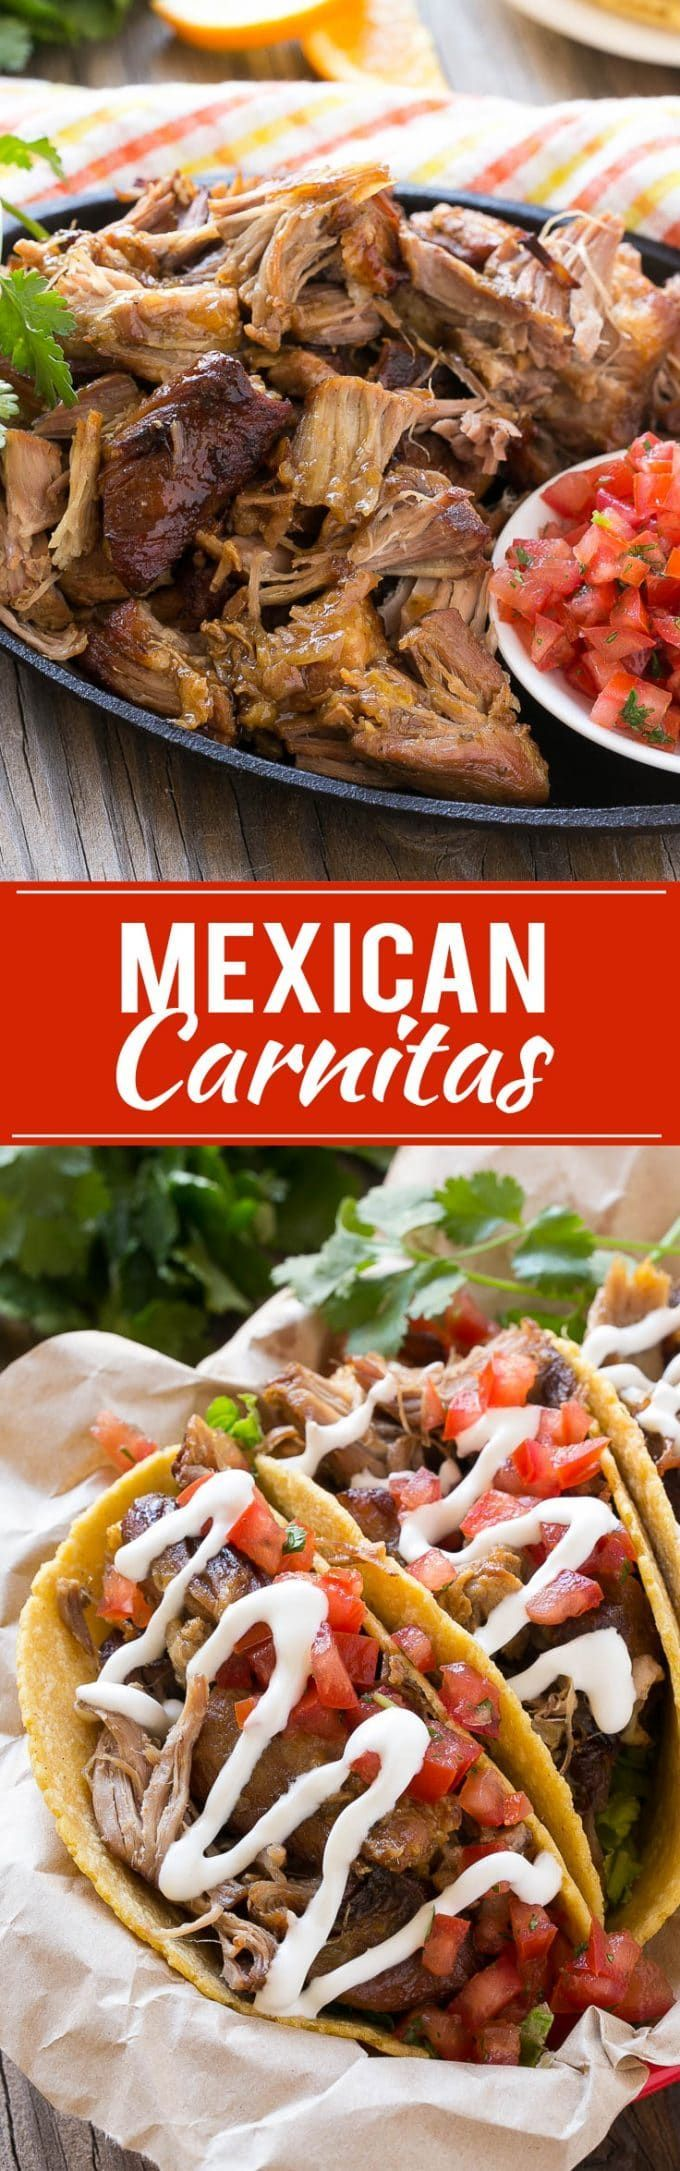 This Mexican carnitas is tender pork slow cooked with citrus and spices, then broiled to crispy perfection. It's a perfect taco filling and tastes even better if it's made a day in advance.